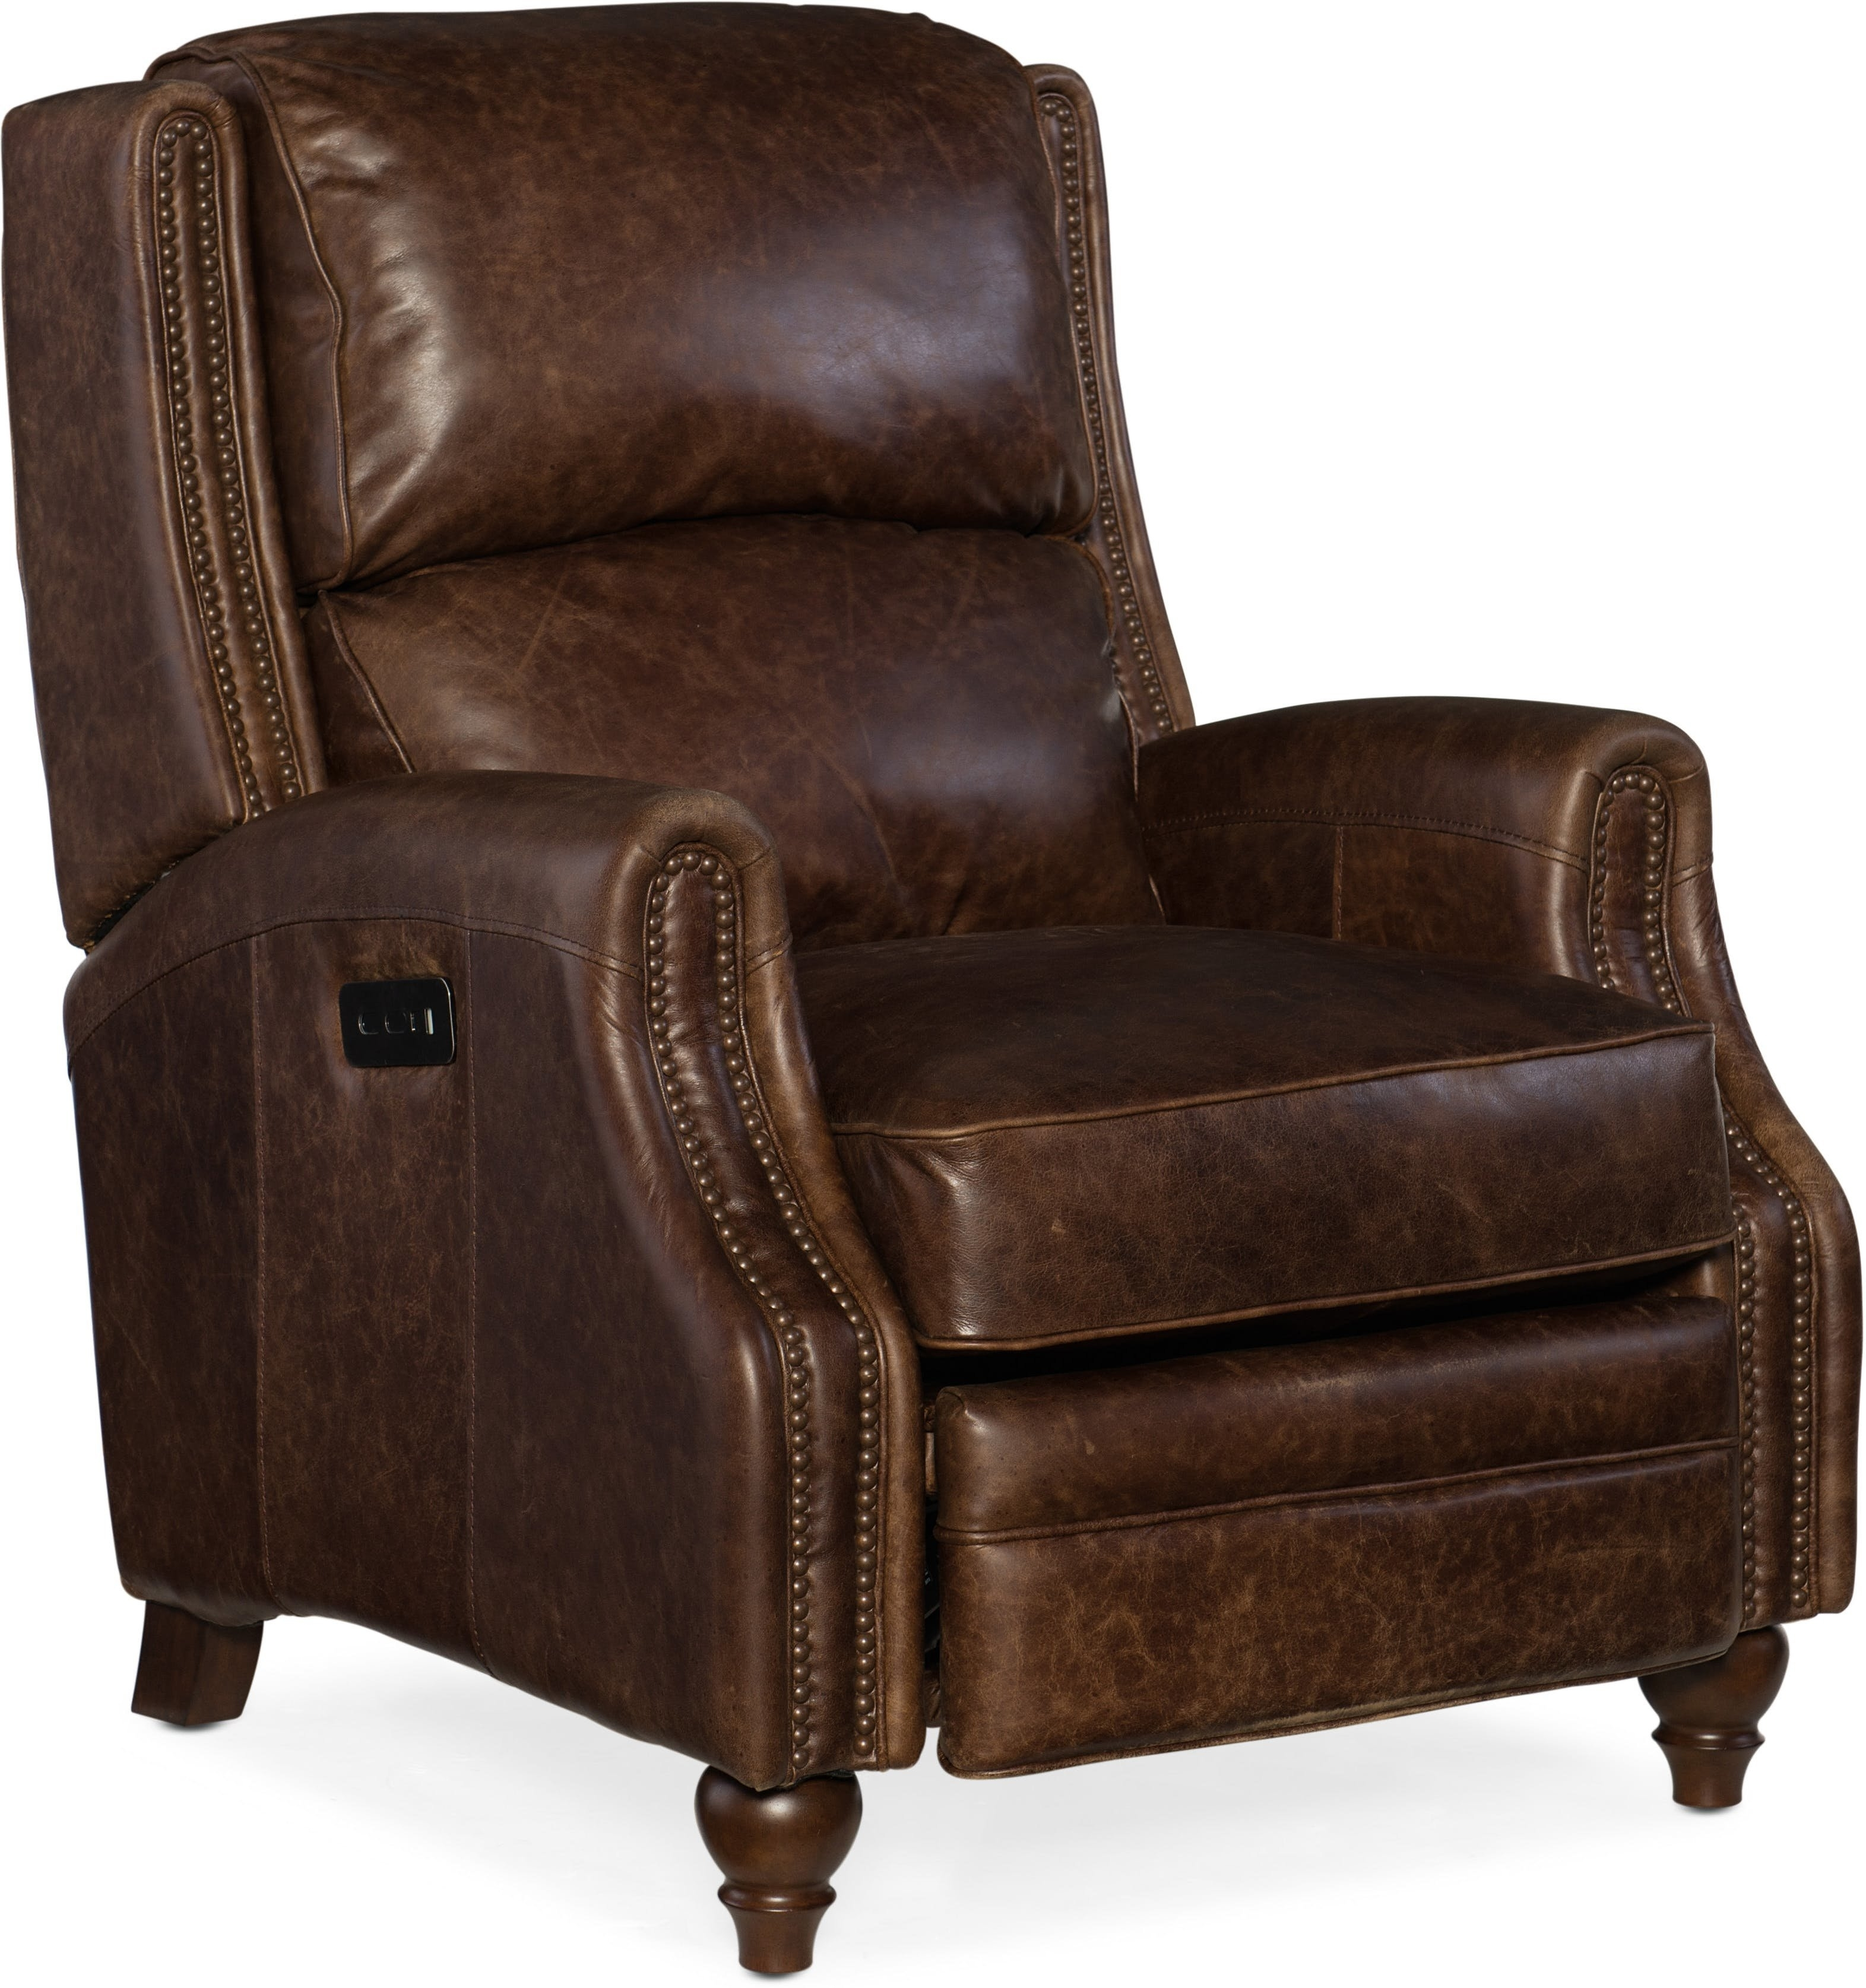 Hooker Furniture Brio Leather Power Recliner | Wayfair With Regard To Clyde Grey Leather 3 Piece Power Reclining Sectionals With Pwr Hdrst & Usb (Image 15 of 25)